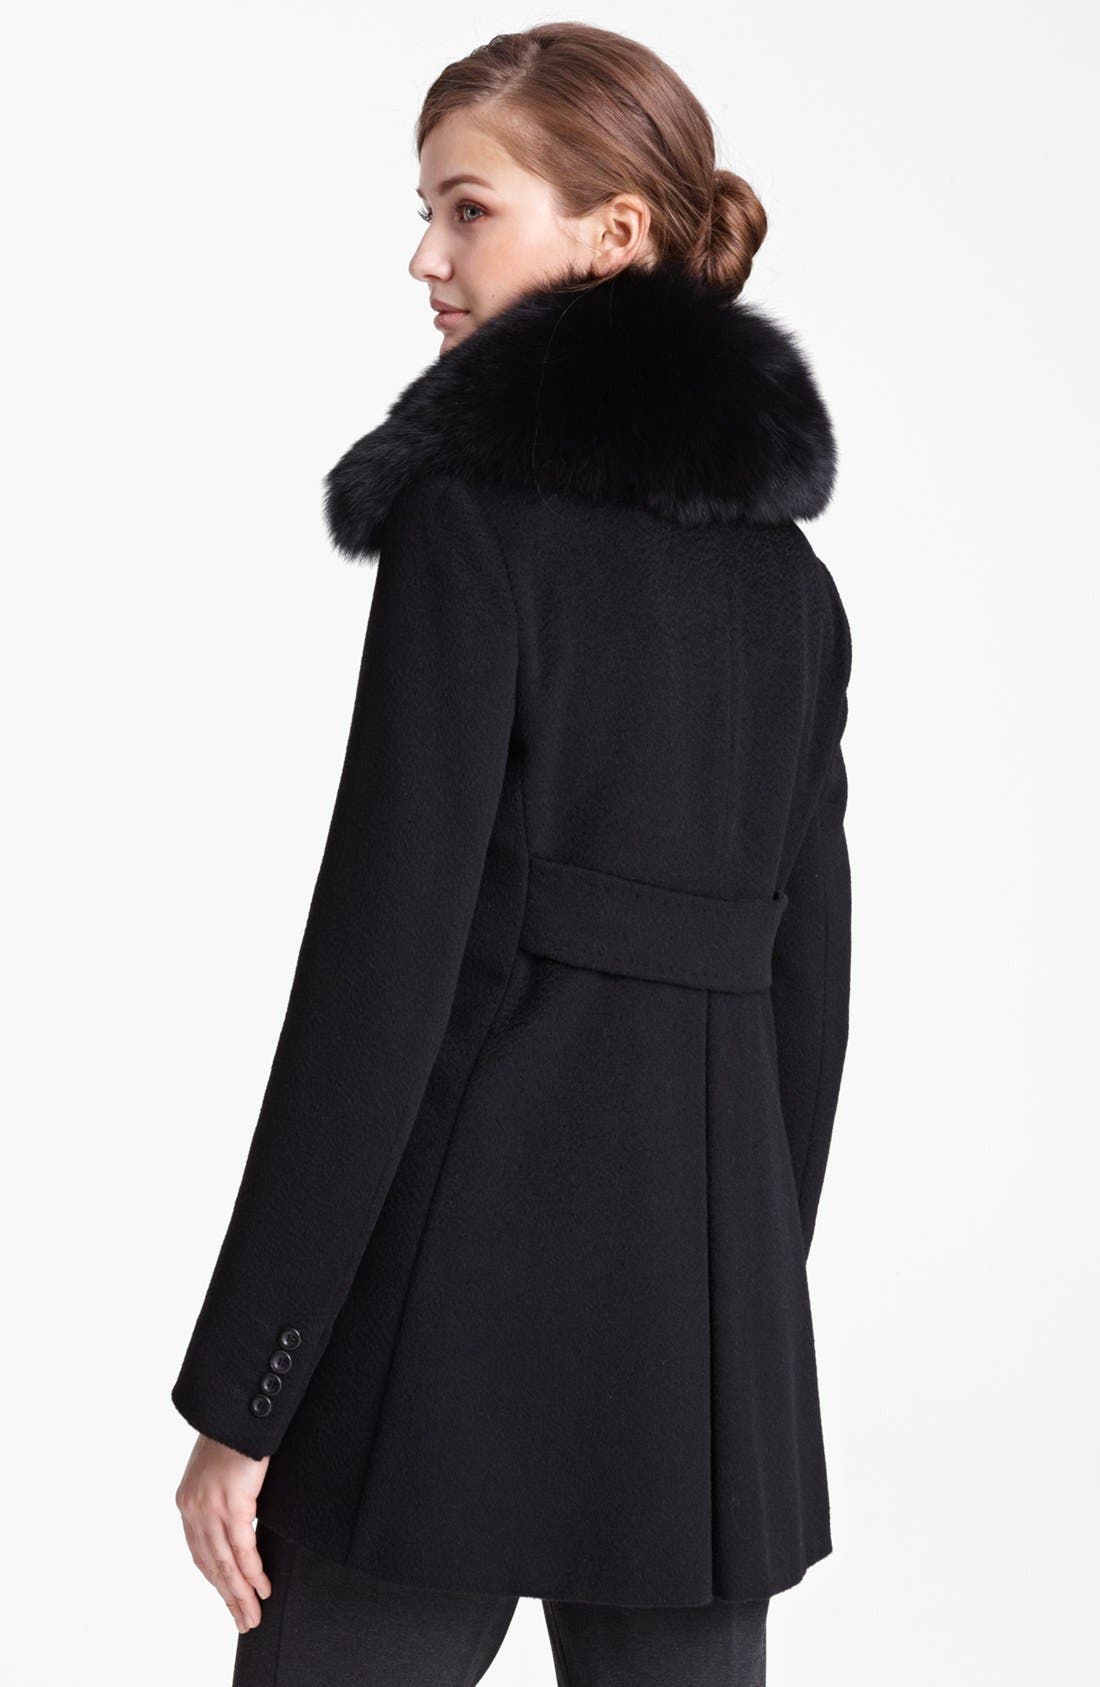 Alternate Image 2  - Max Mara Camel's Hair Swing Coat with Genuine Fur Collar